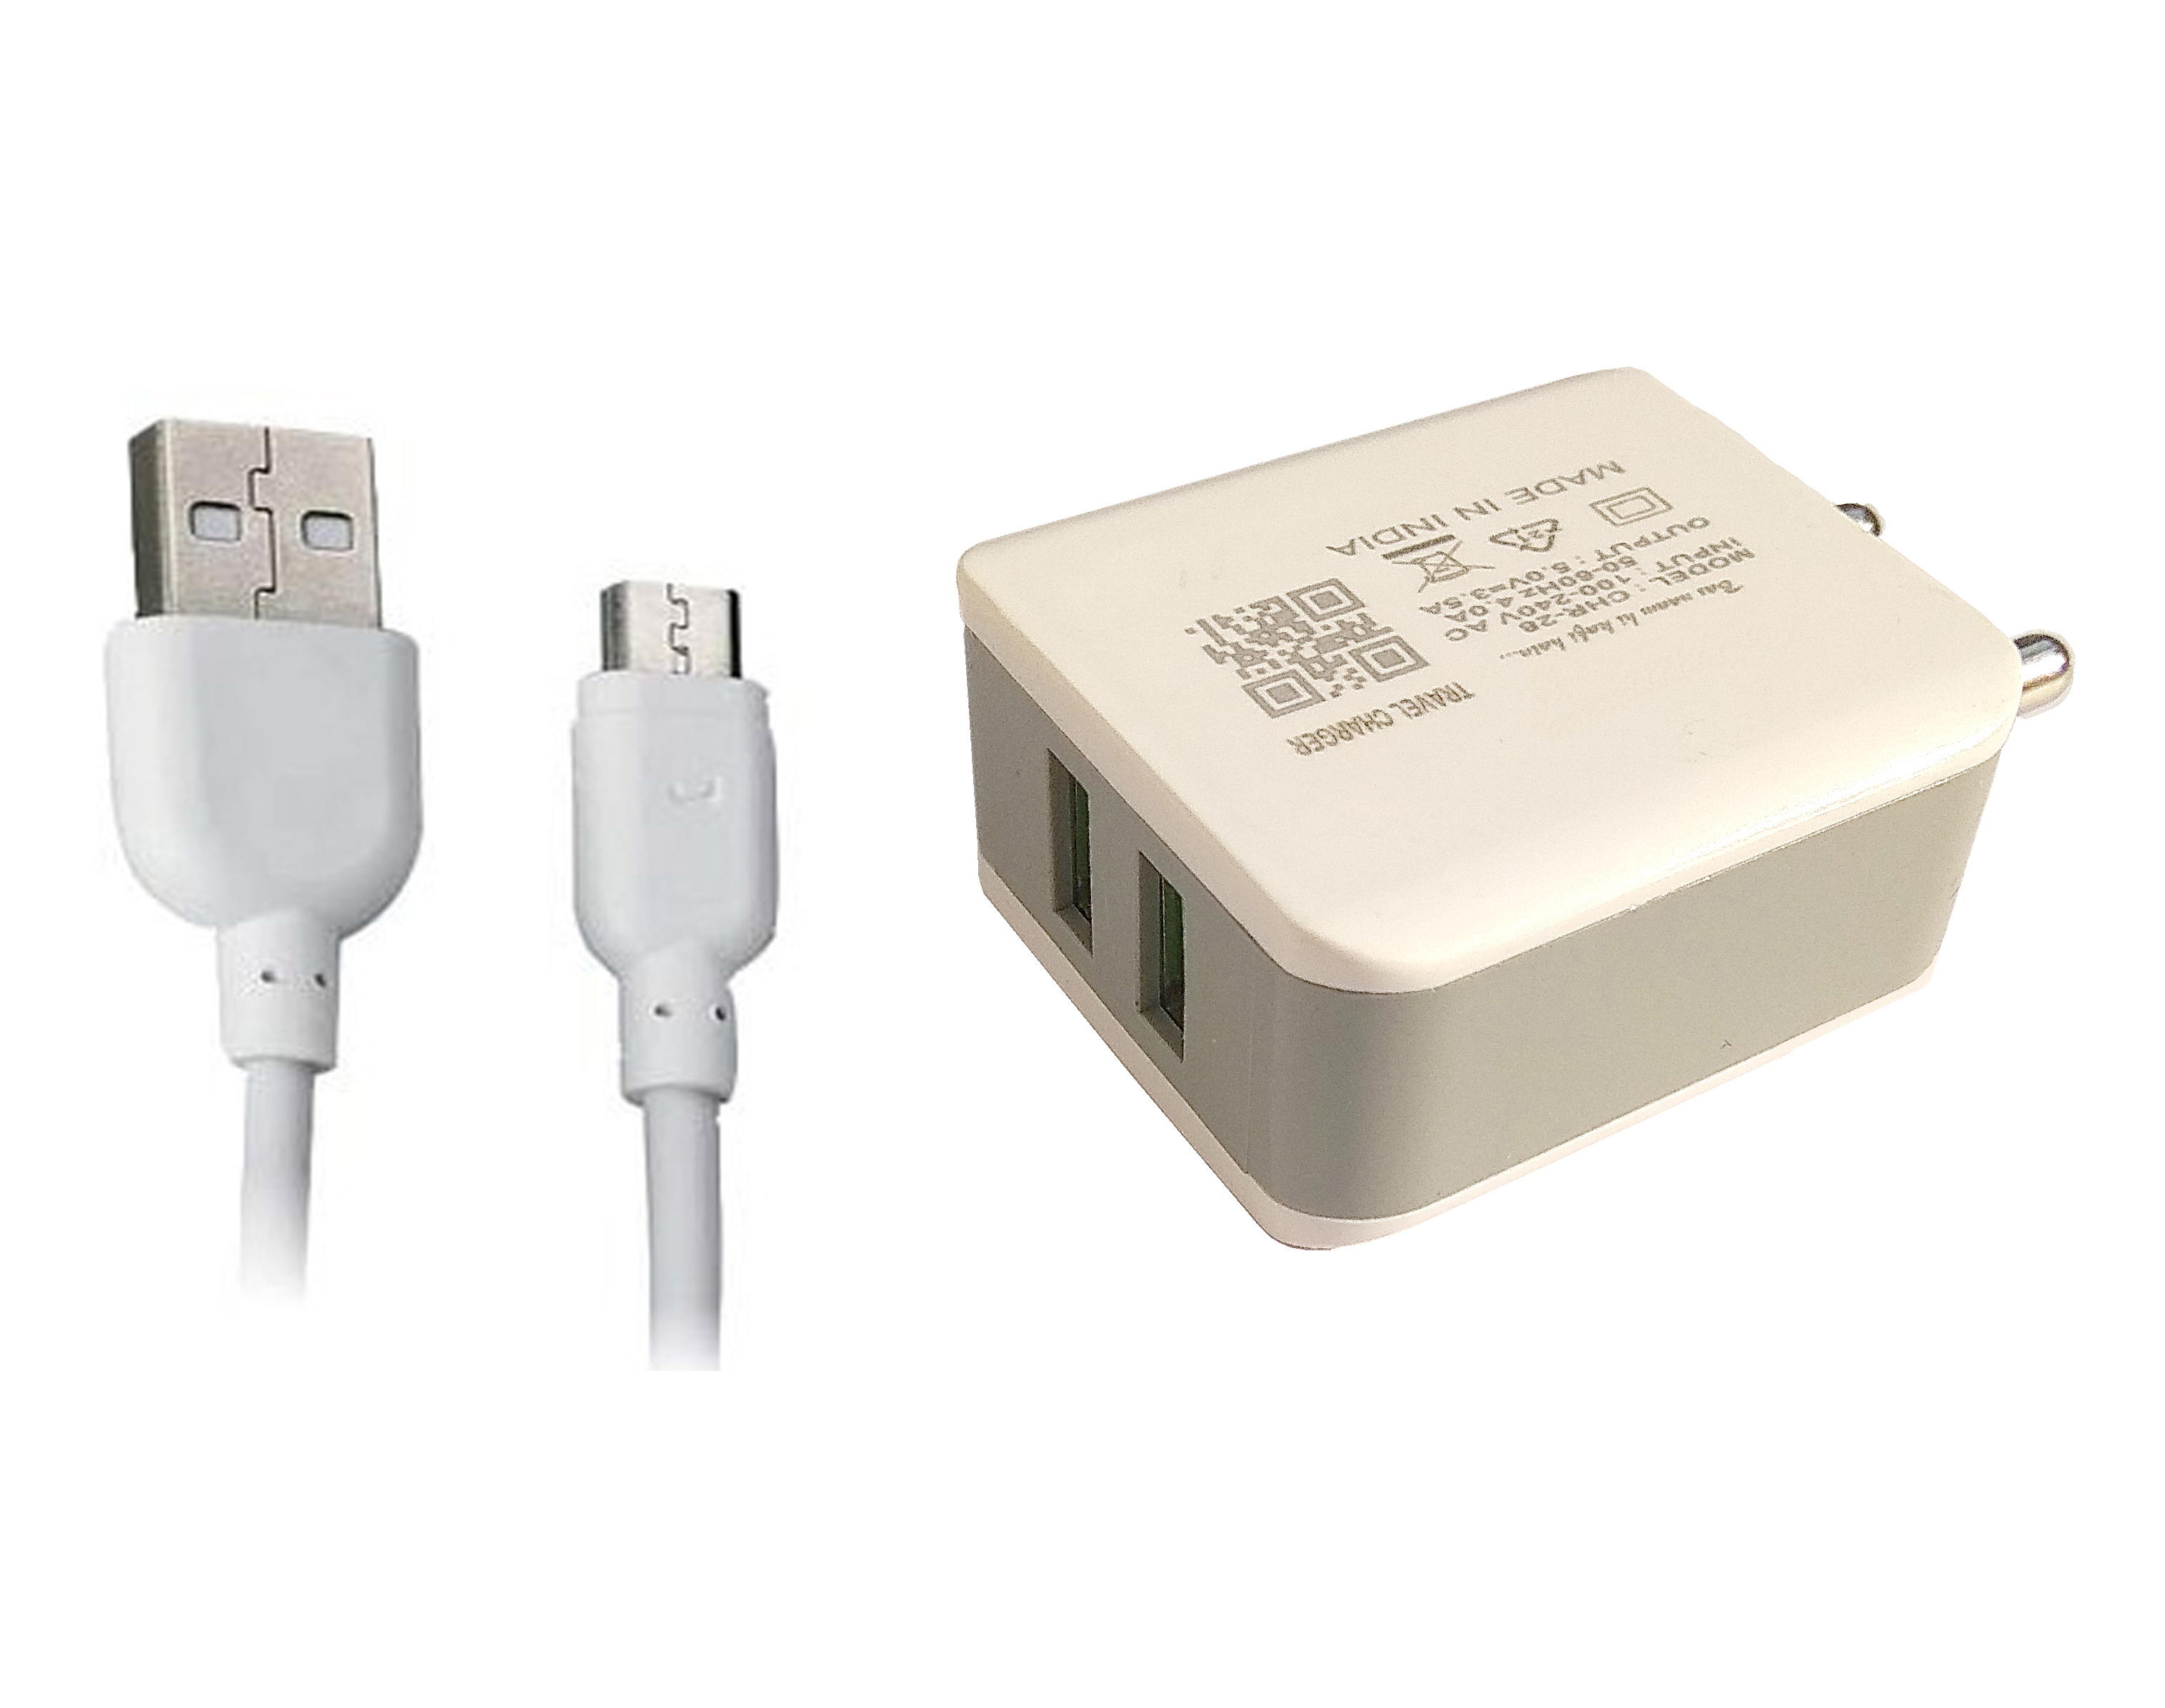 3.5 Amp 5V Dual USB Port Fast Charger Travel Adapter/Wall Charger/Dock For All Smartphones Mobiles with Charging Cable